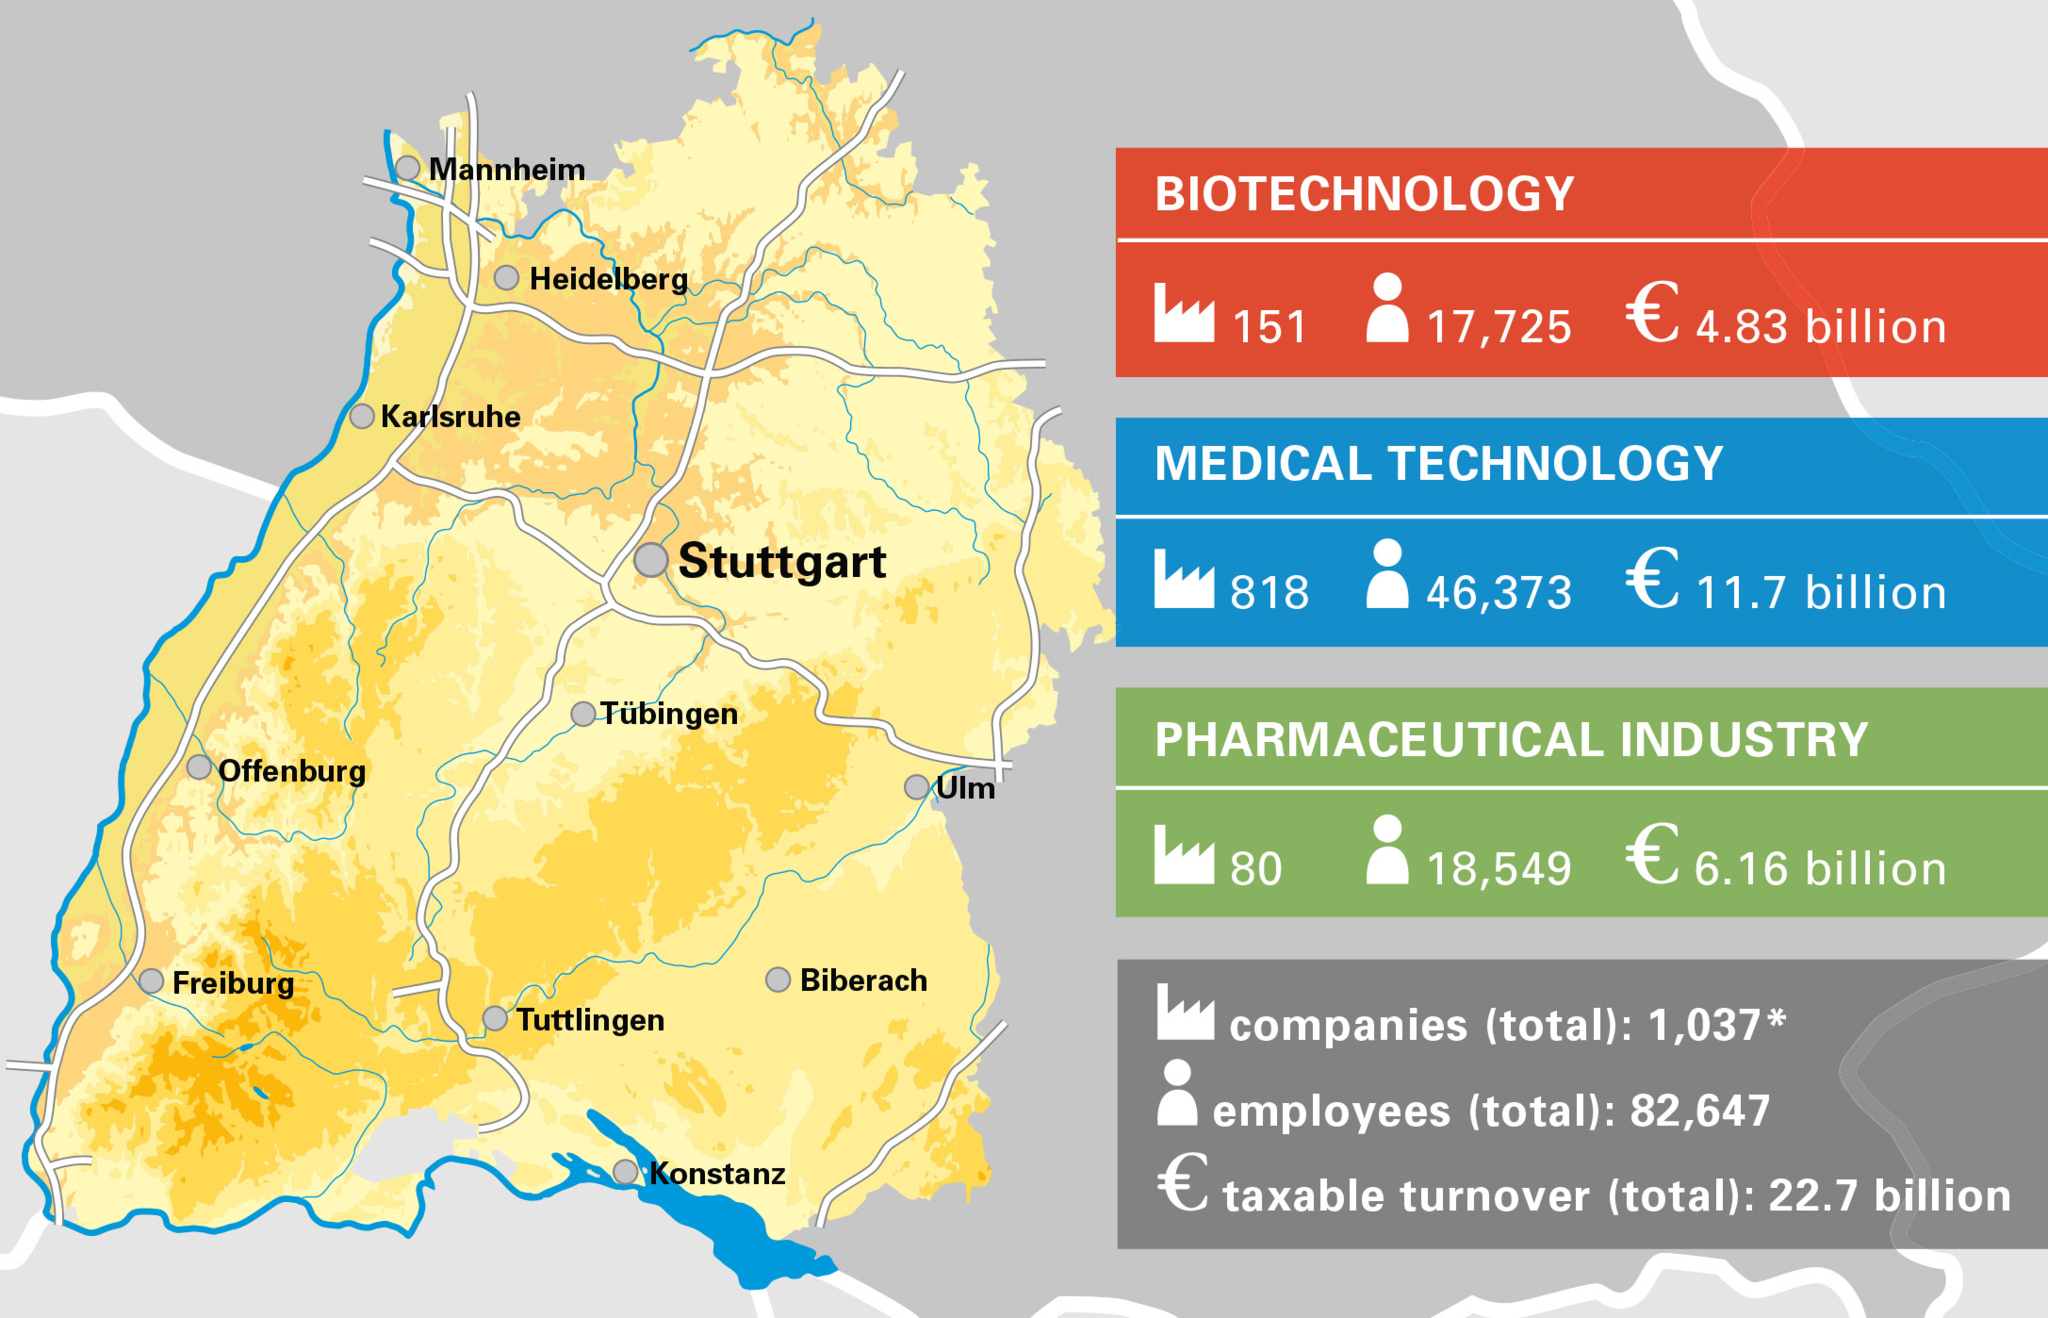 Key figures of the Baden-Württemberg biotechnology sector: 151 companies, 17.725 employees, revenues of 4.83 billion eurosKey figures of the Baden-Württemberg medical technology sector: 818 companies, 46,373 employees, revenues of 11.7 billion eurosKey fi